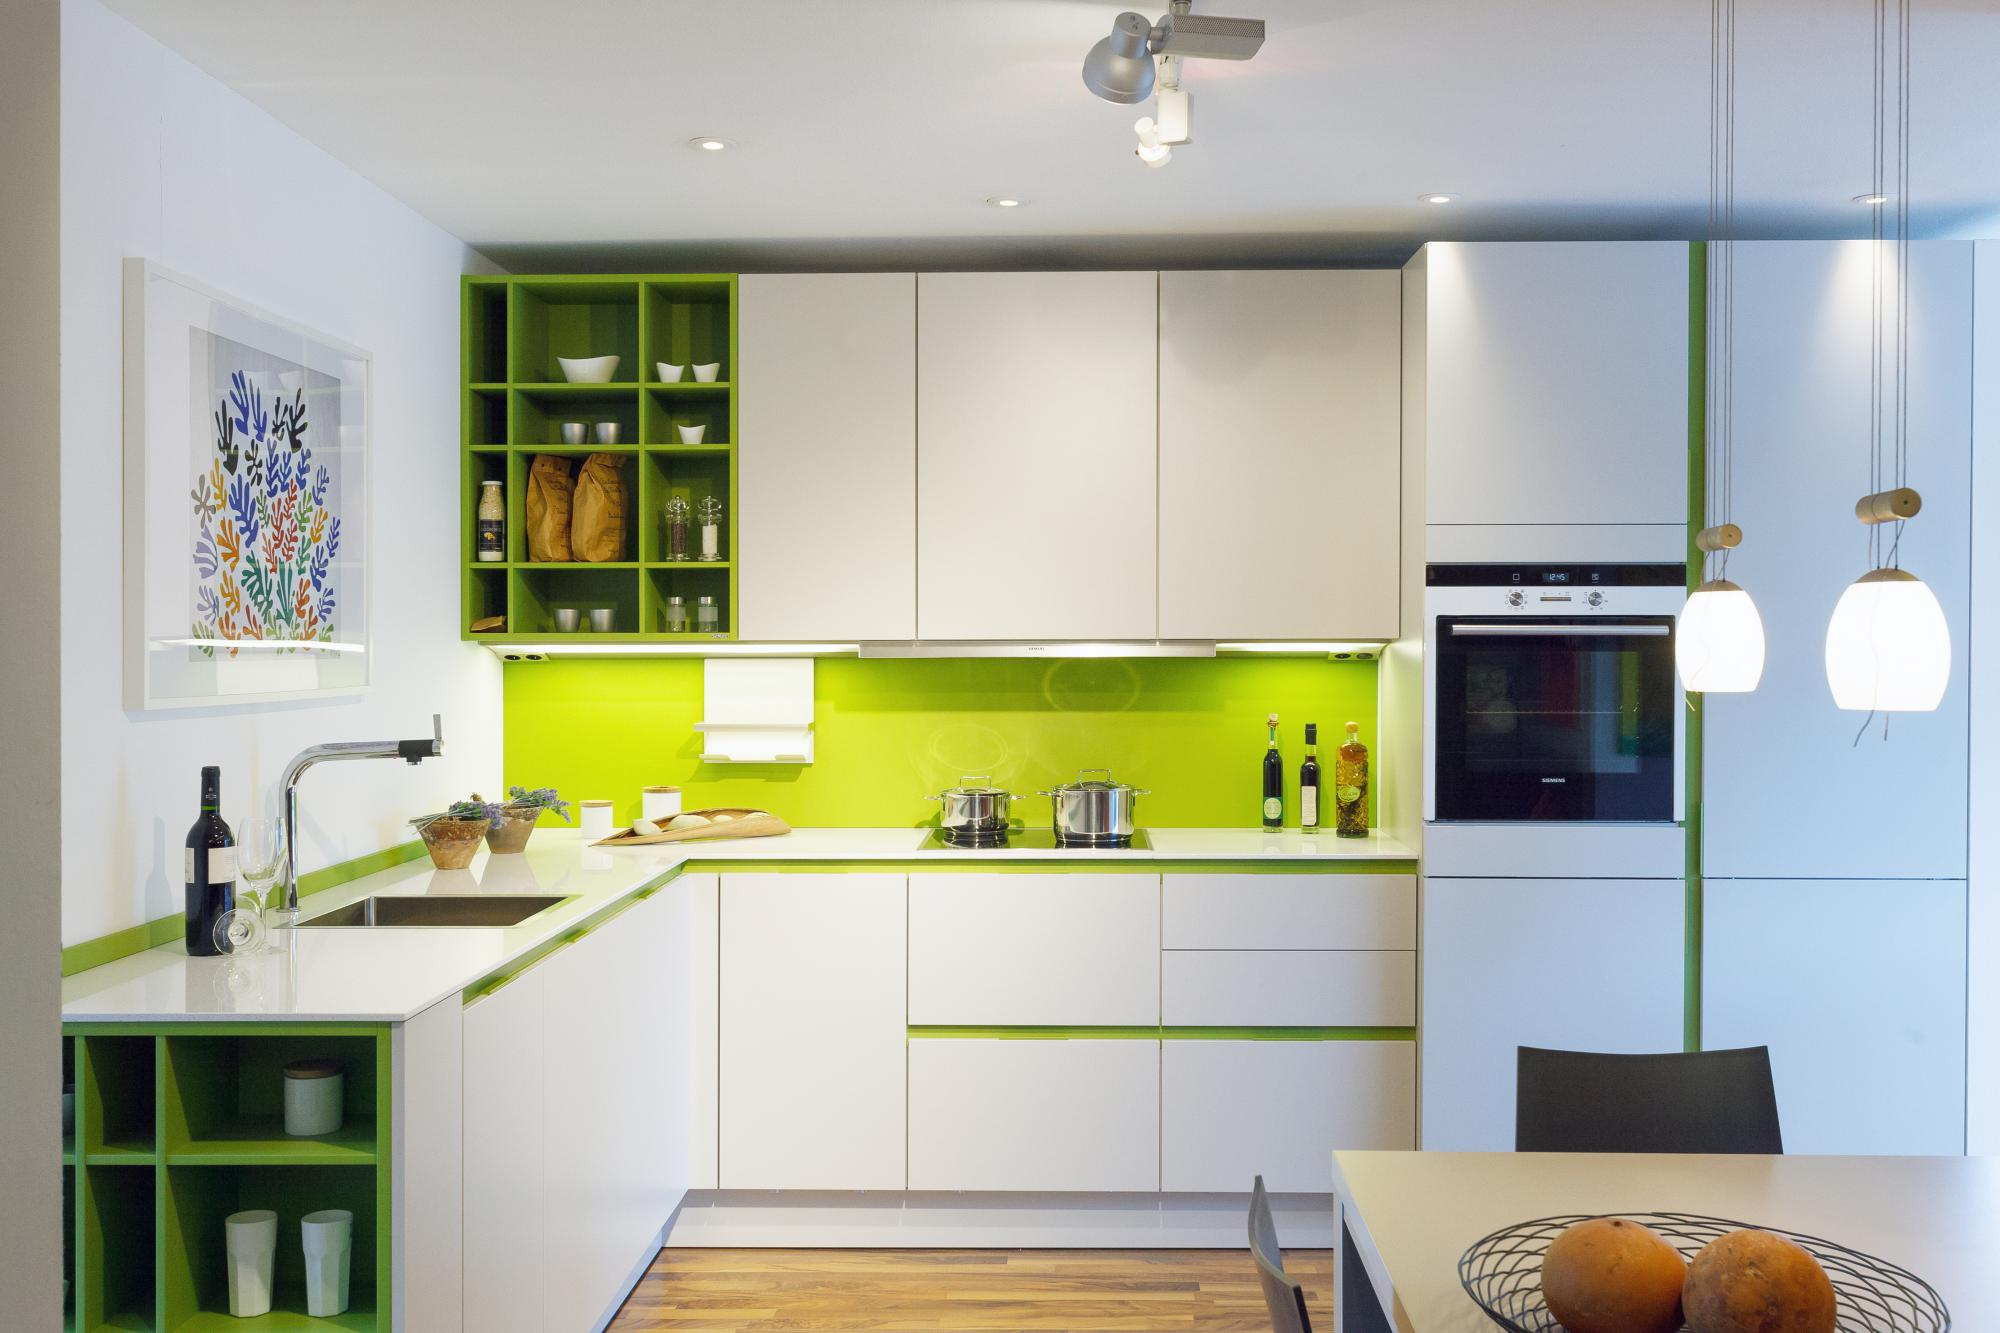 Contemporary Kitchen Design: Kitchens with a Pop of Color ...